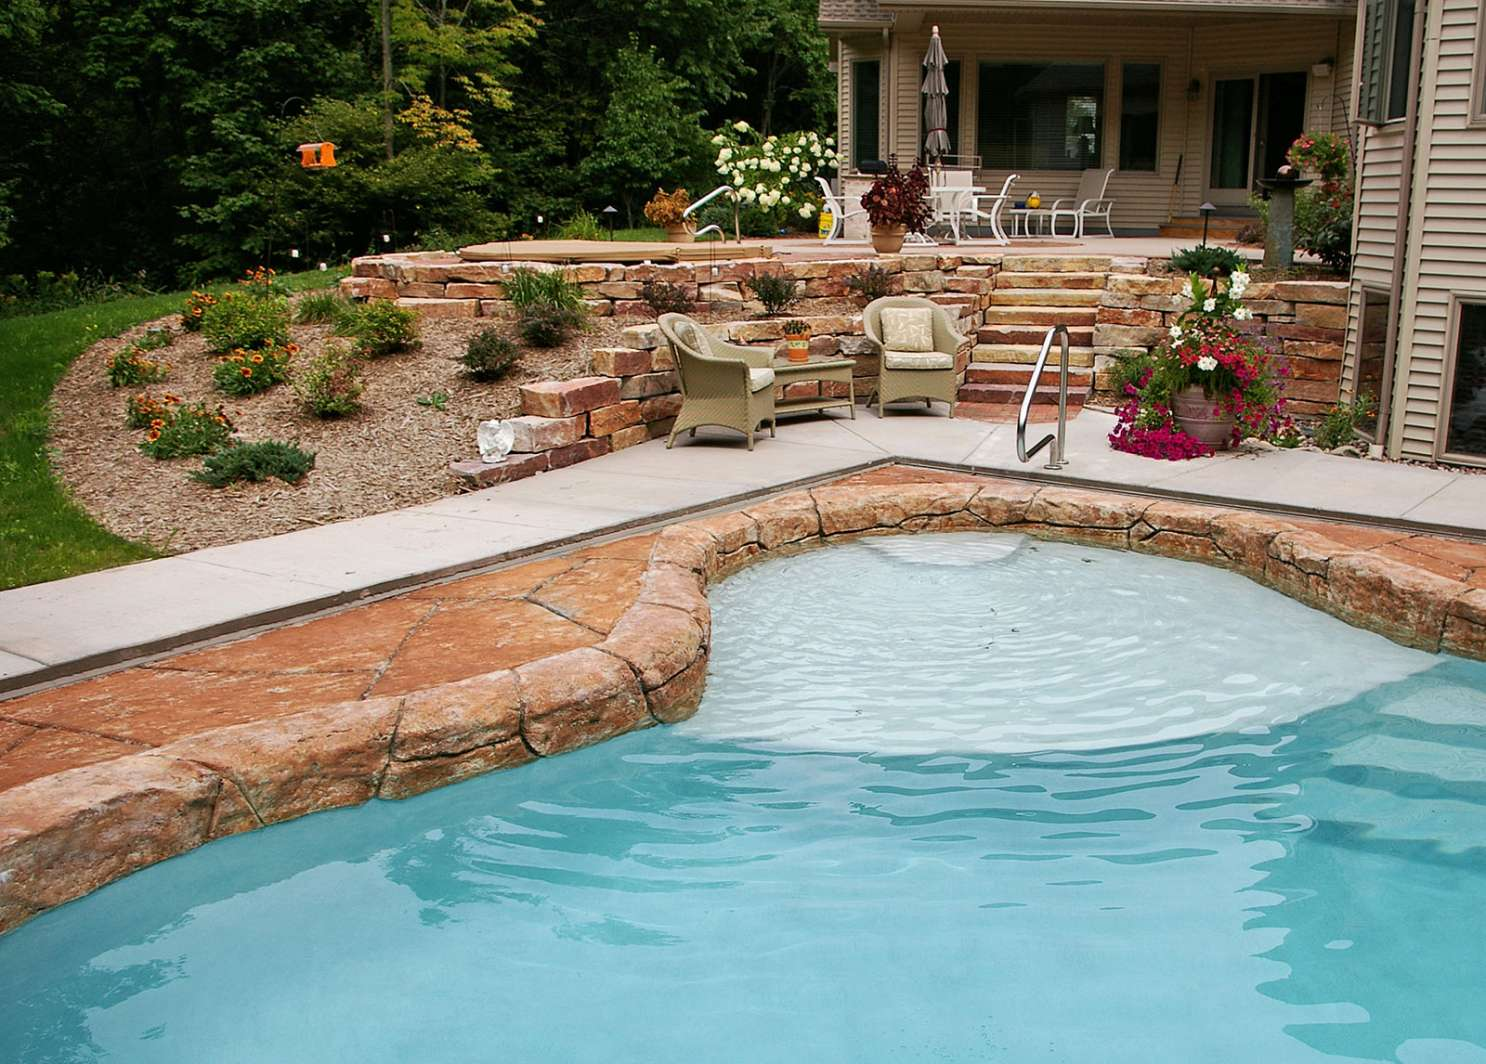 Enhance Your How To Clean A Green Above Ground Pool Skills